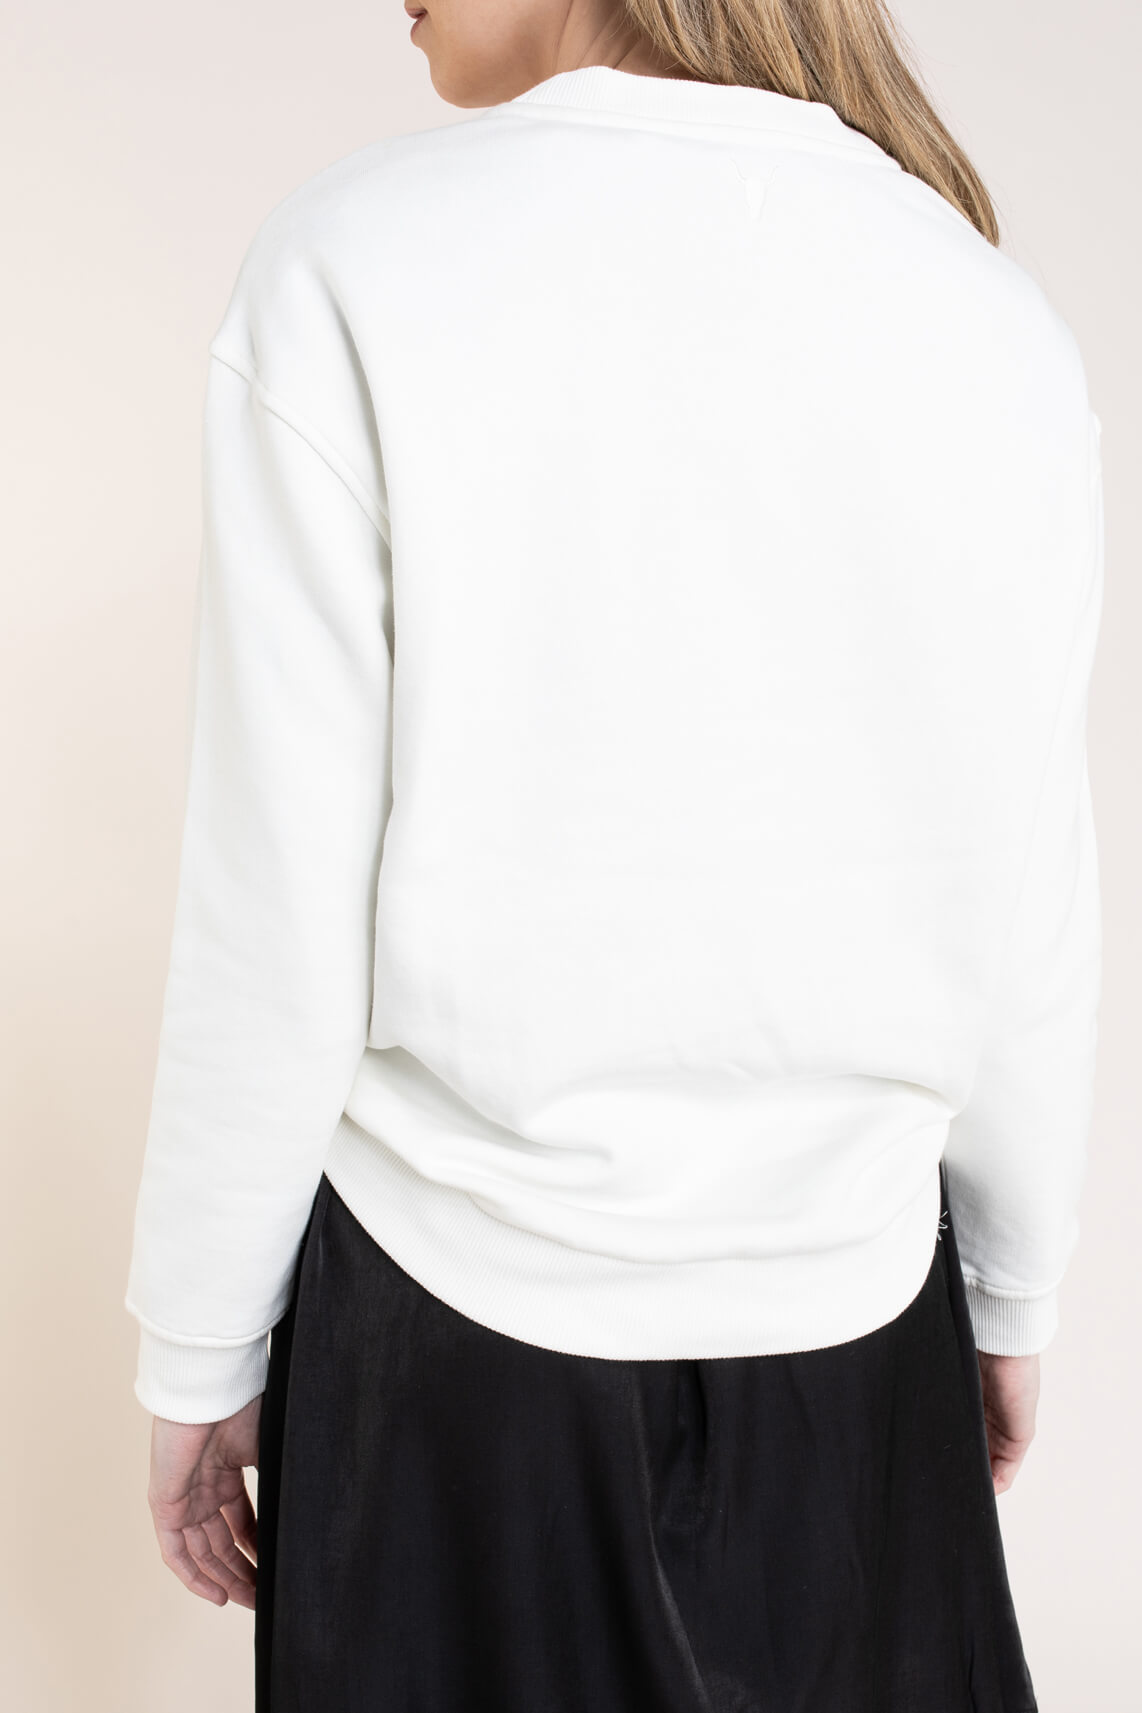 Alix The Label Dames Sketchy sweater Wit